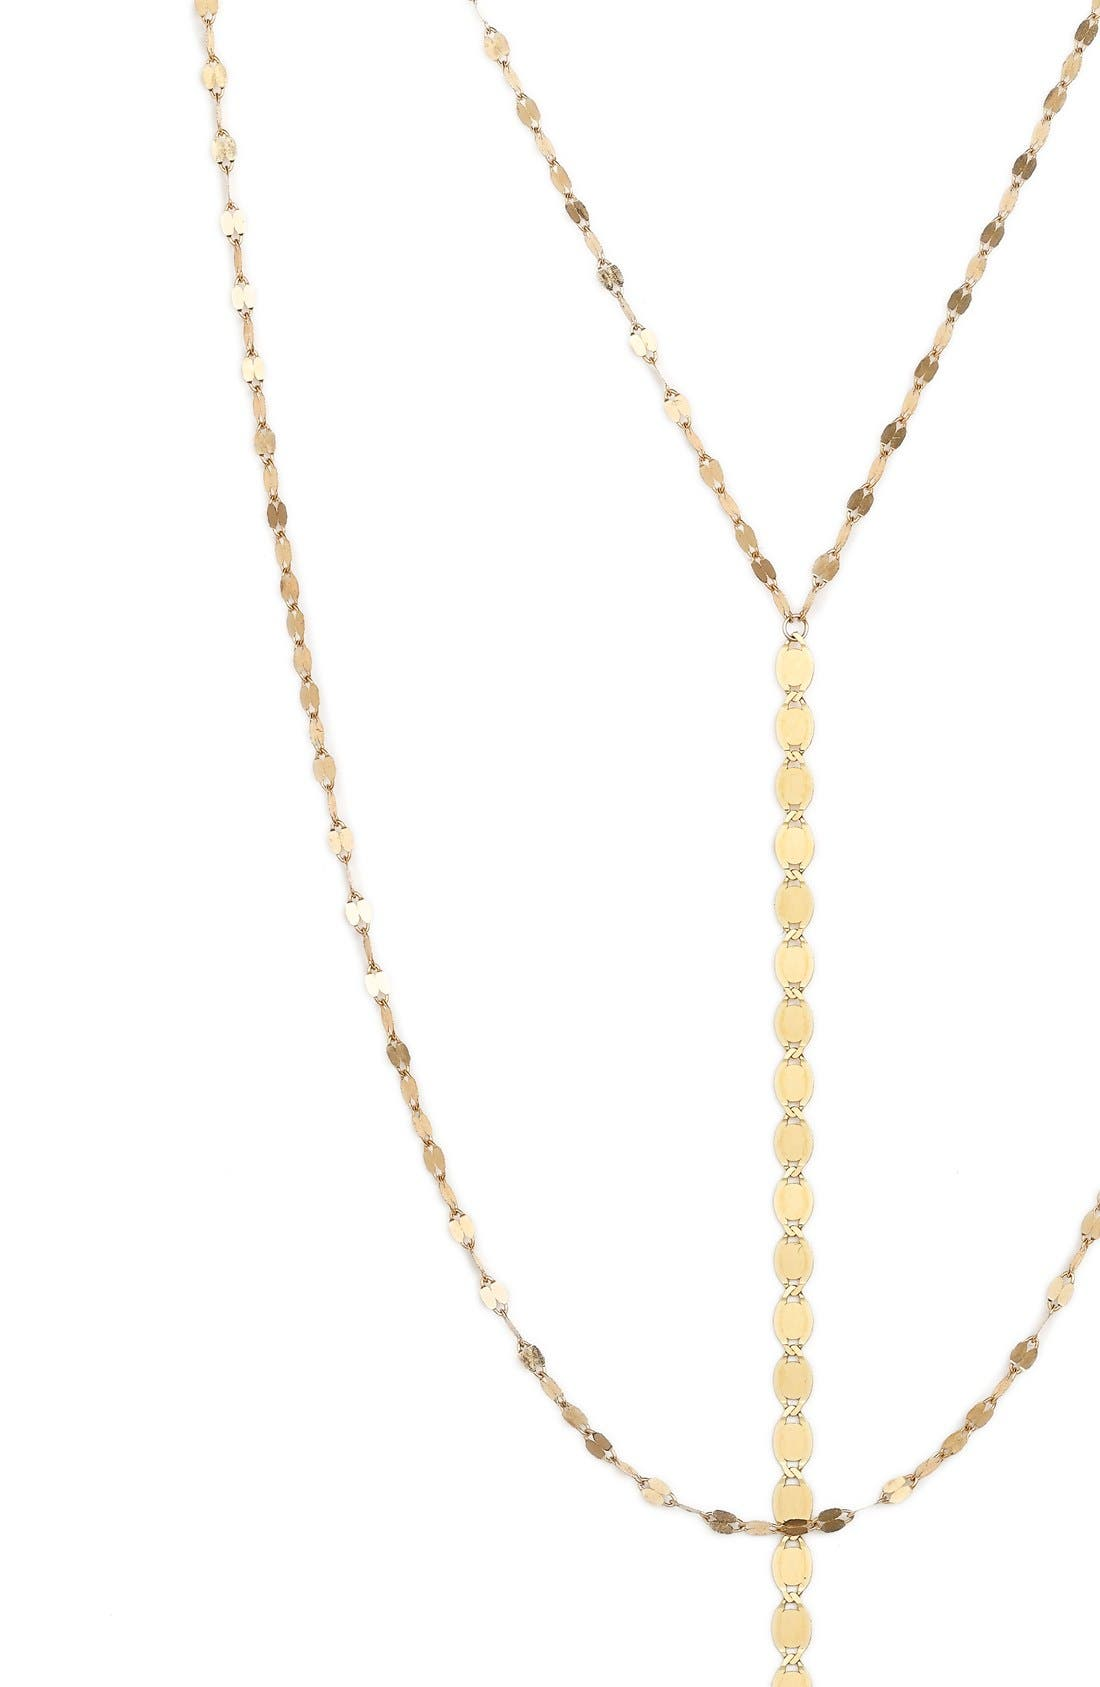 'Nude Blake' Multistrand Drop Necklace,                             Alternate thumbnail 3, color,                             YELLOW GOLD